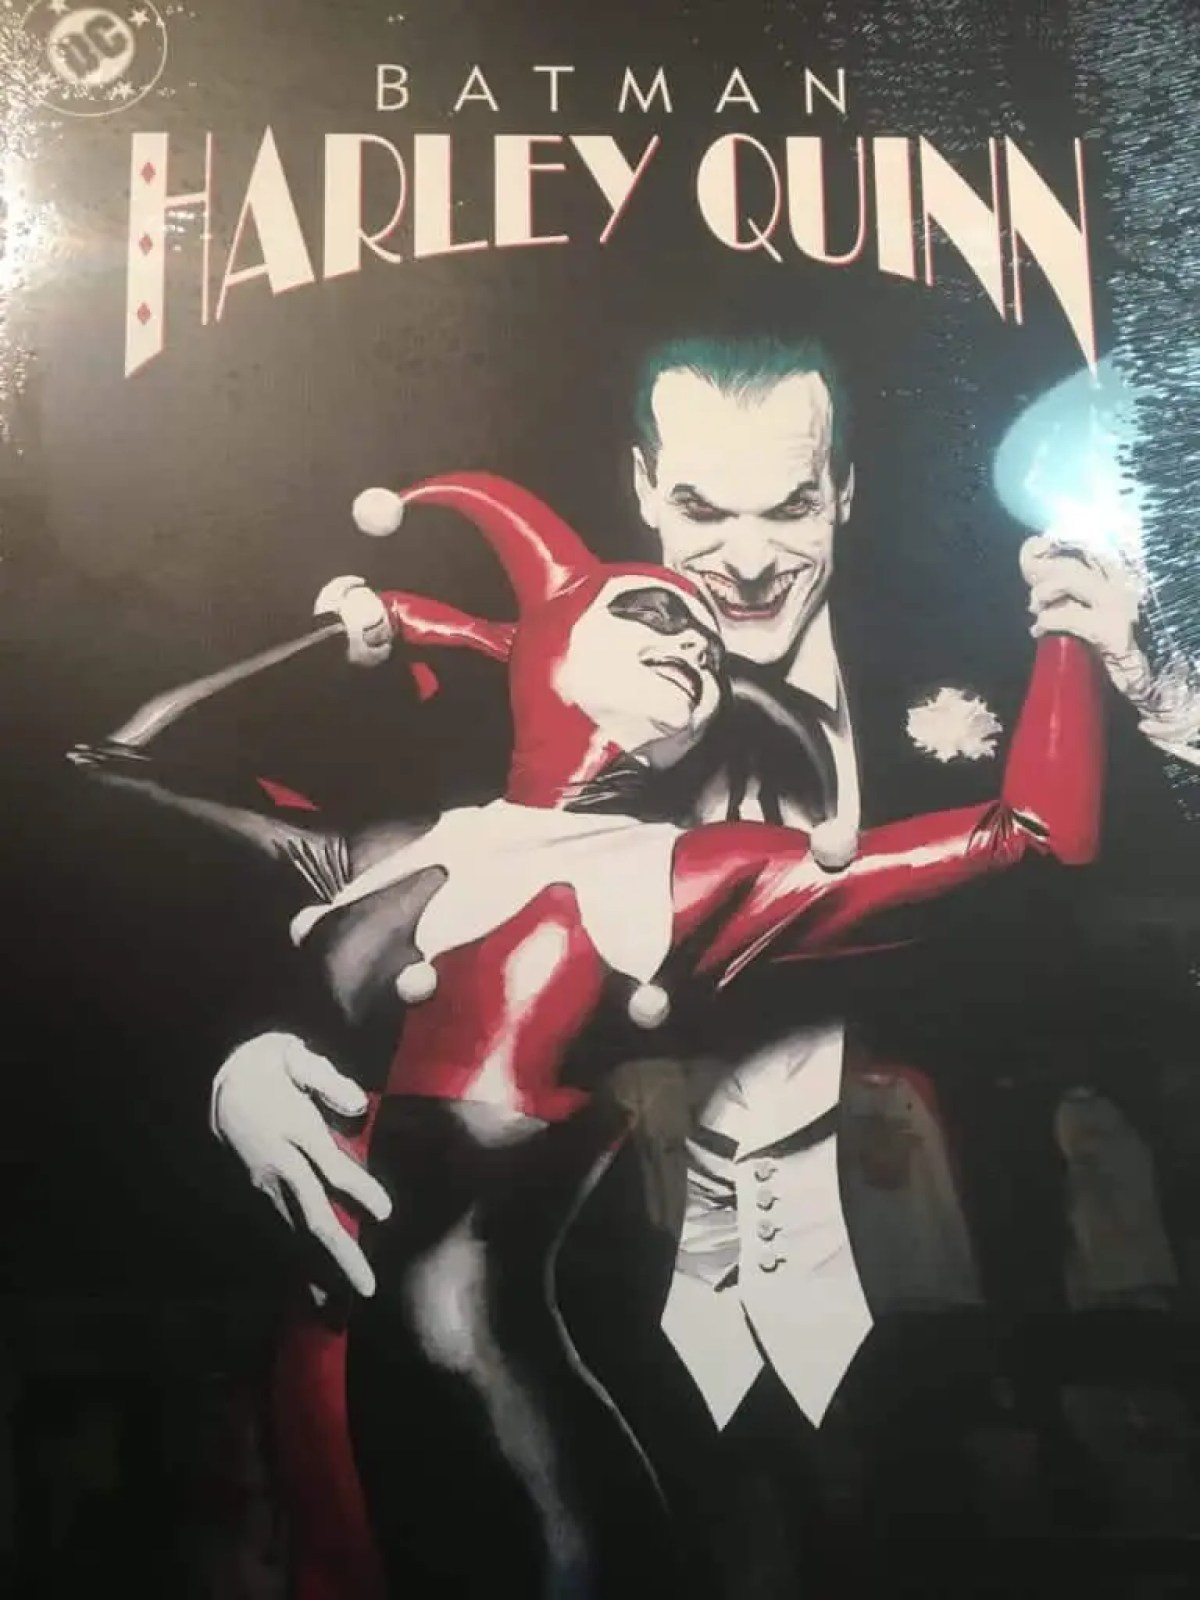 My Favourite: The Joker and Harley